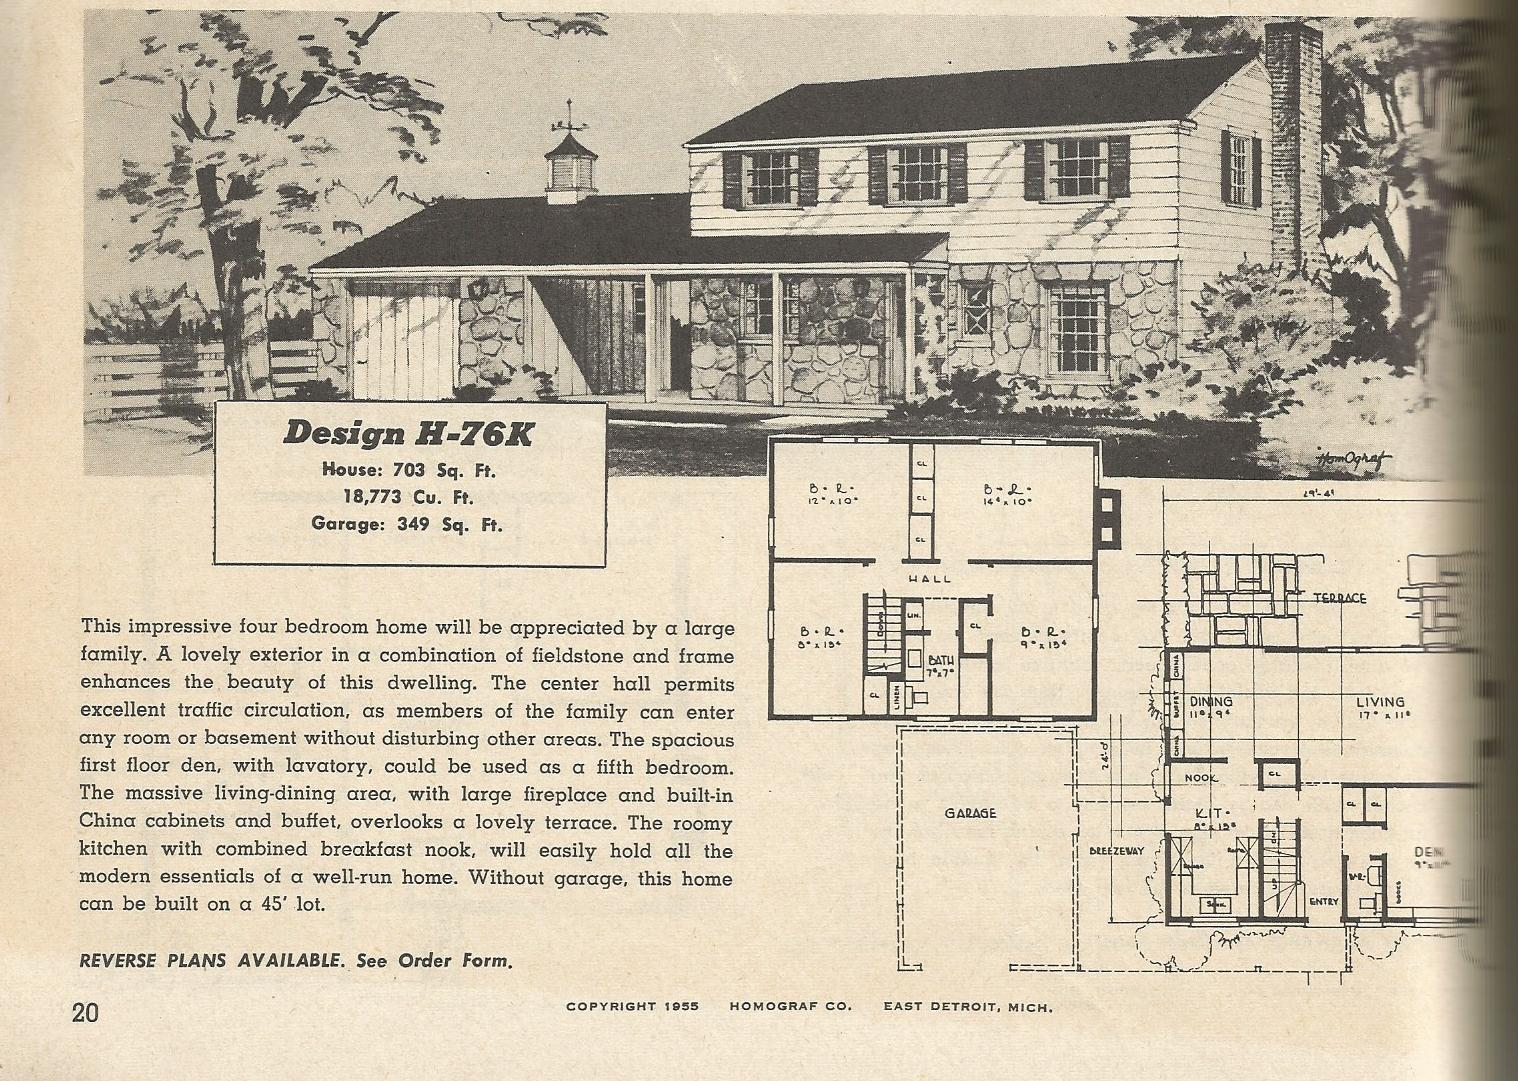 vintage house plans 76?w=300&h=213 vintage house plans 1950s two story, 1 1 2 story and ramblers,1950 Ranch House Plans